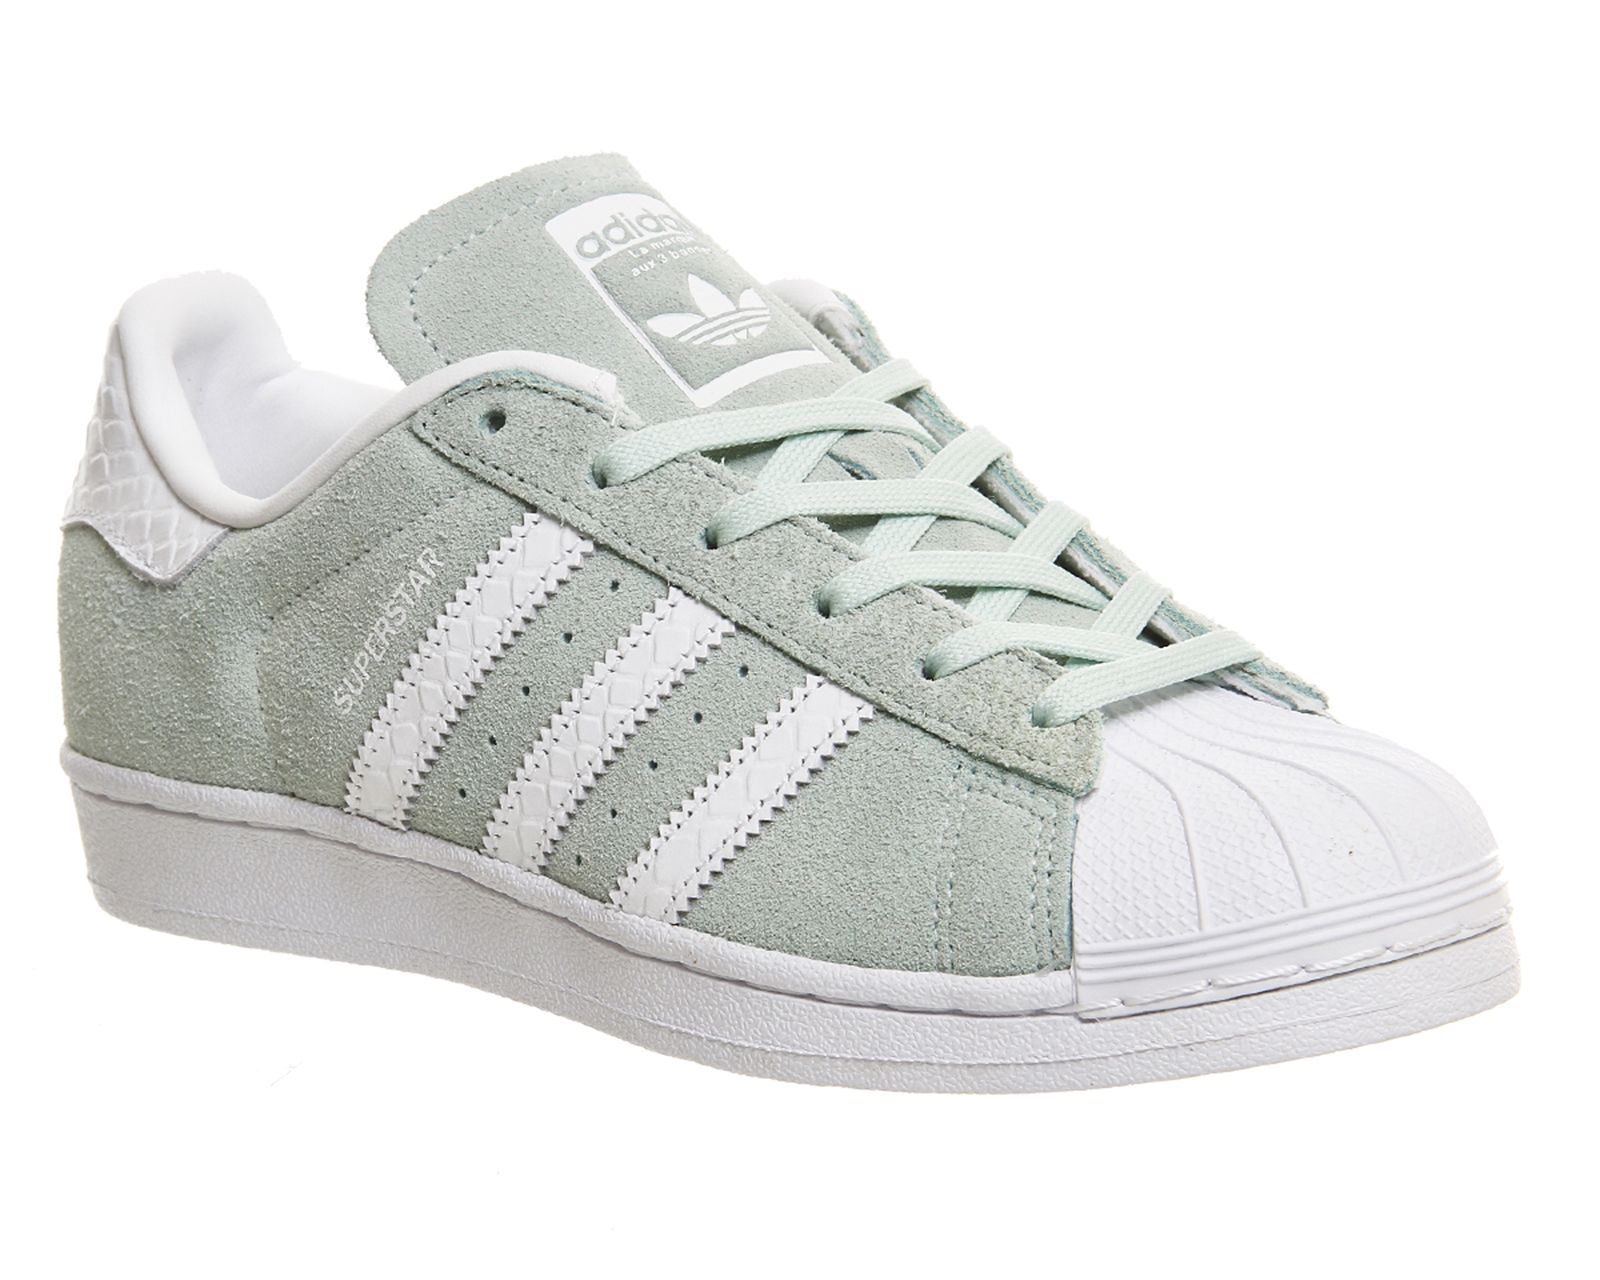 e55d7d0811bd buy adidas superstar mens buying now earthholistic0695  buy ice mint white  snake adidas superstar 1 from office.co.uk.